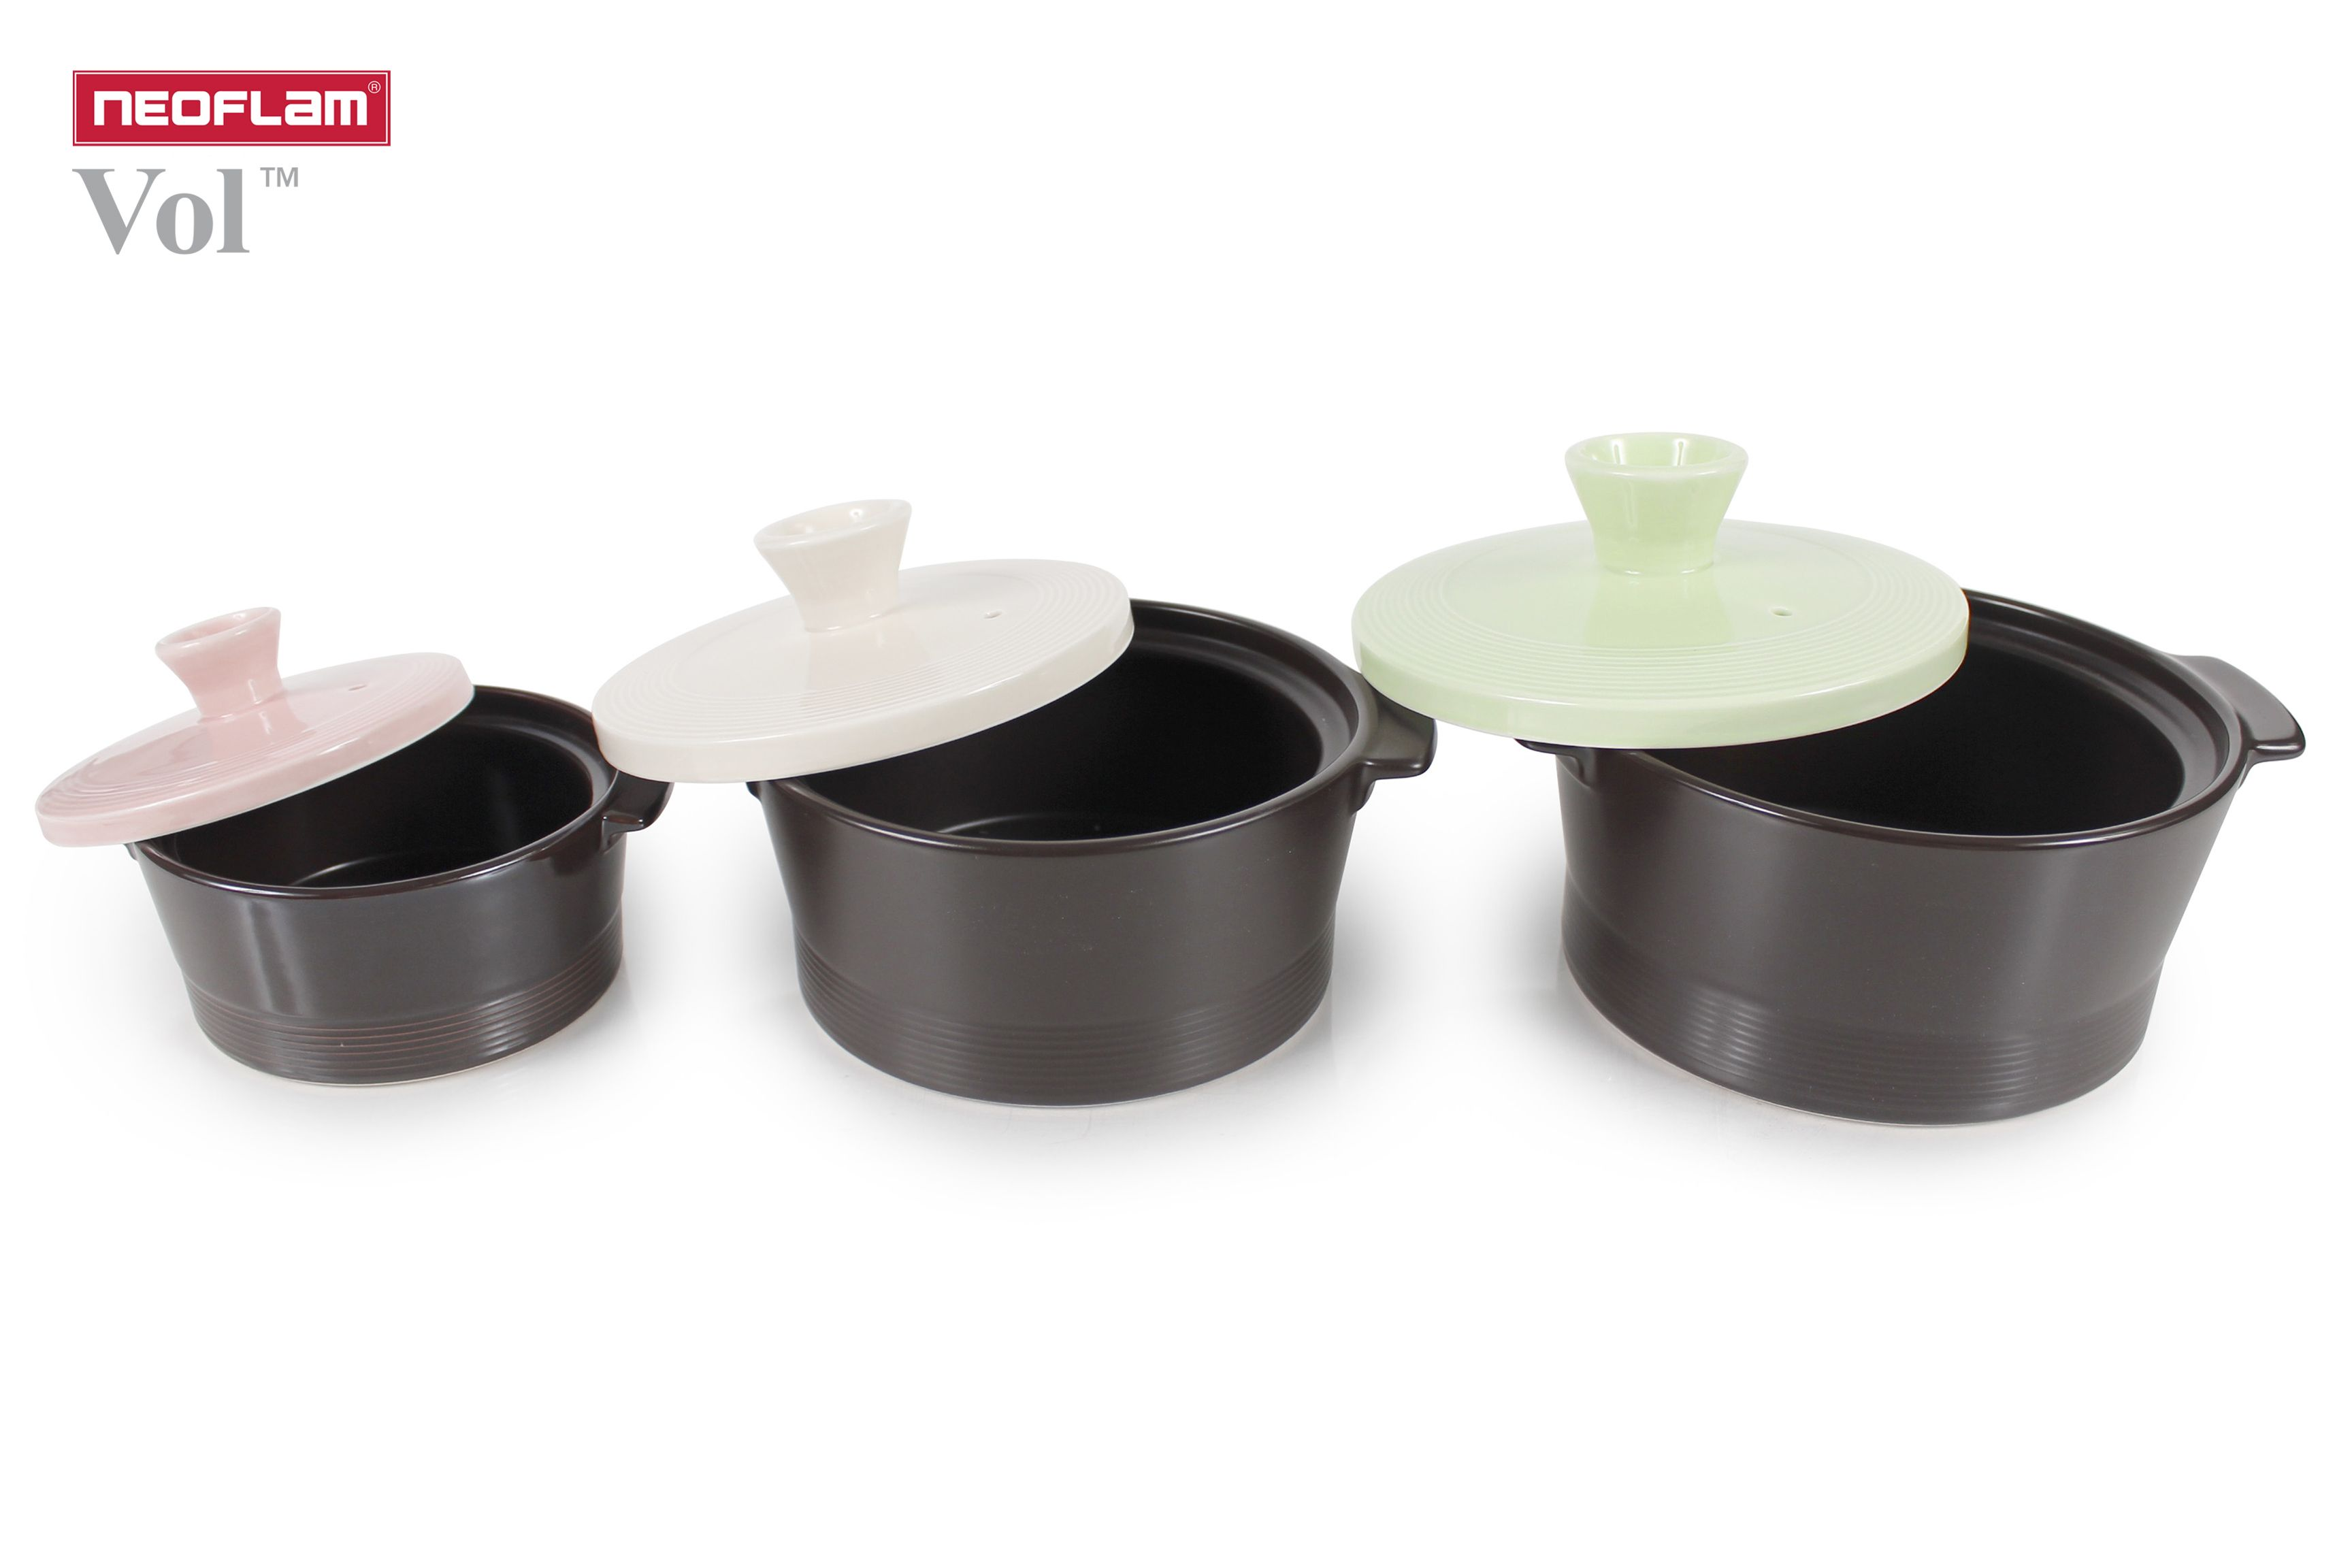 Vol Ceramic Stovetop Cookware Nature Is Always Best In Its Original Form Rarely Found In Any Other Heat Resistant Cookware The Beautiful Modern Colors Used I